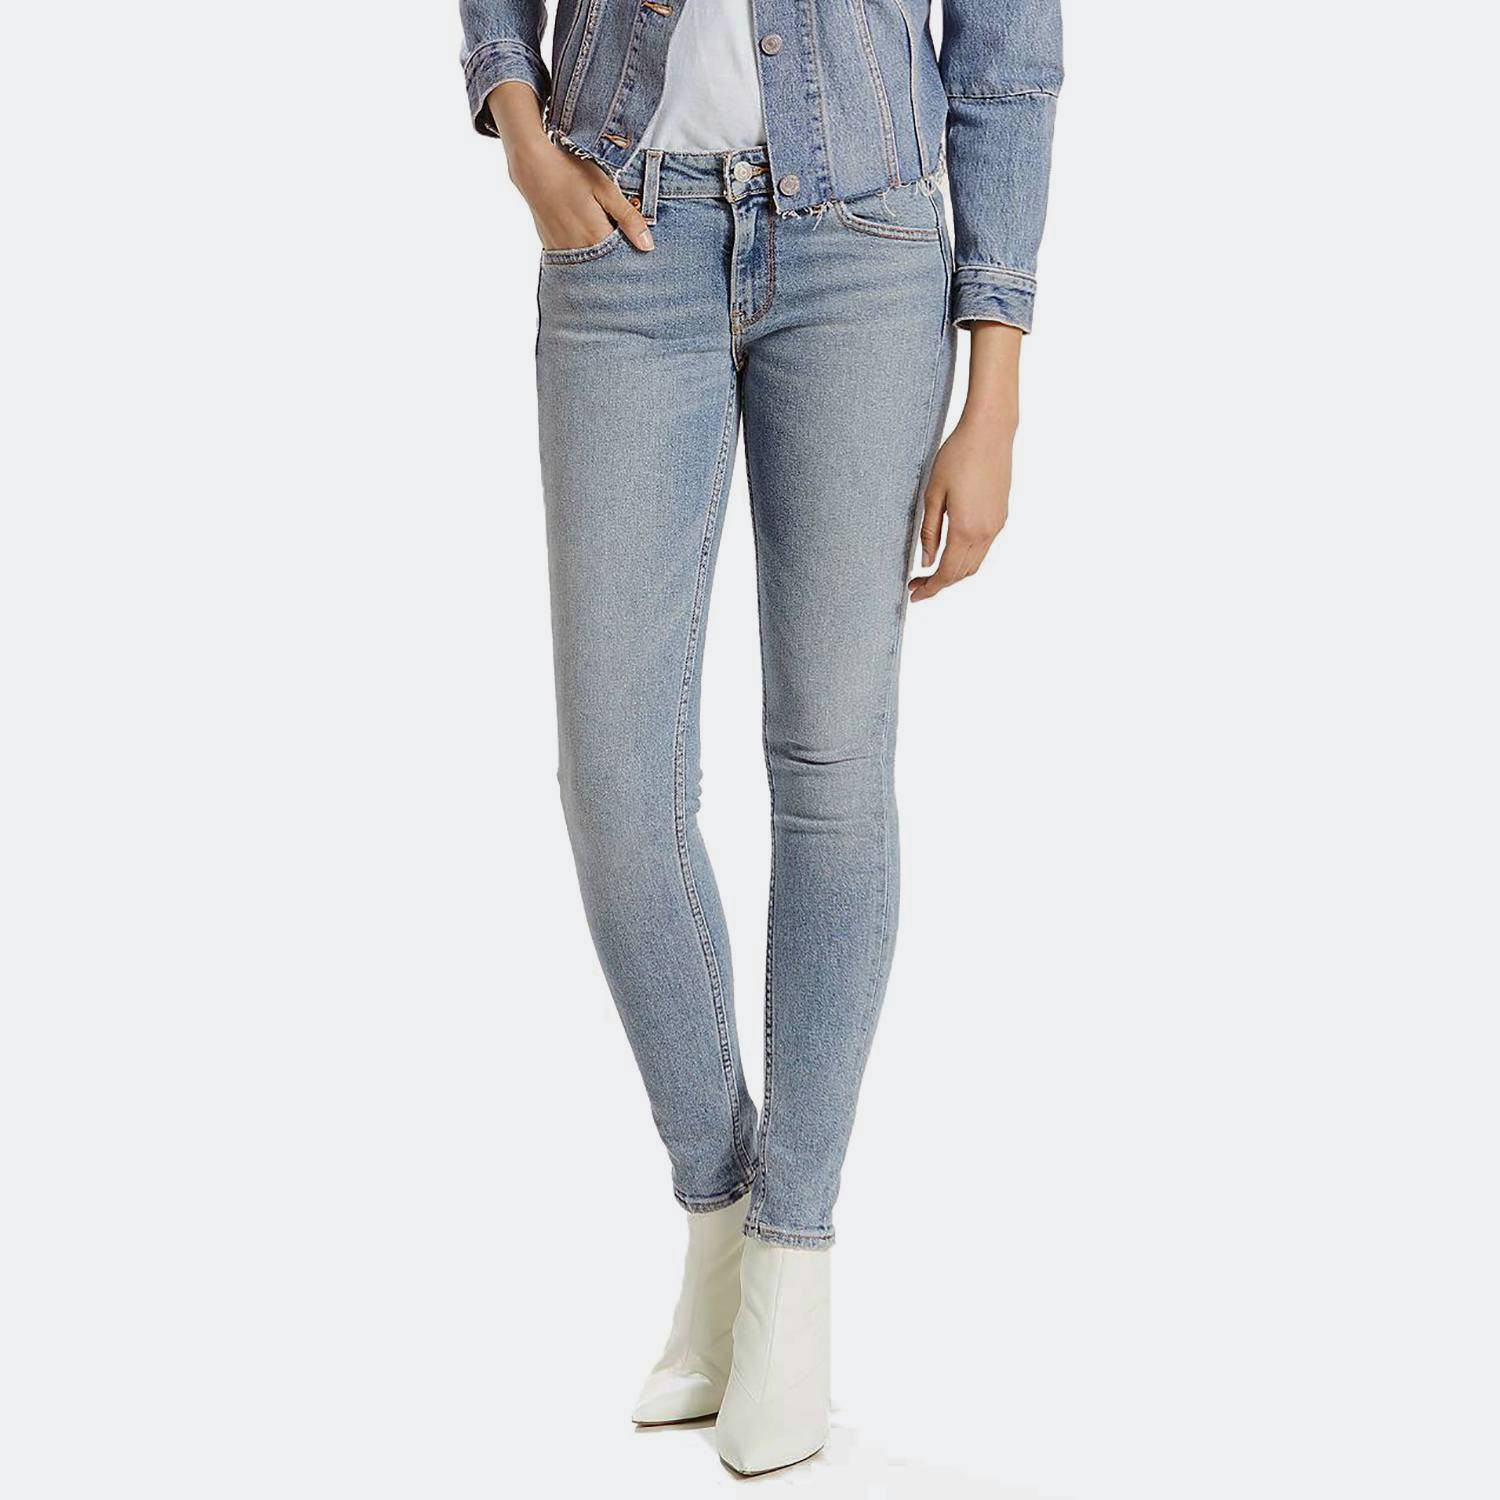 711 Altered Skinny Jeans (2082520451_30506)